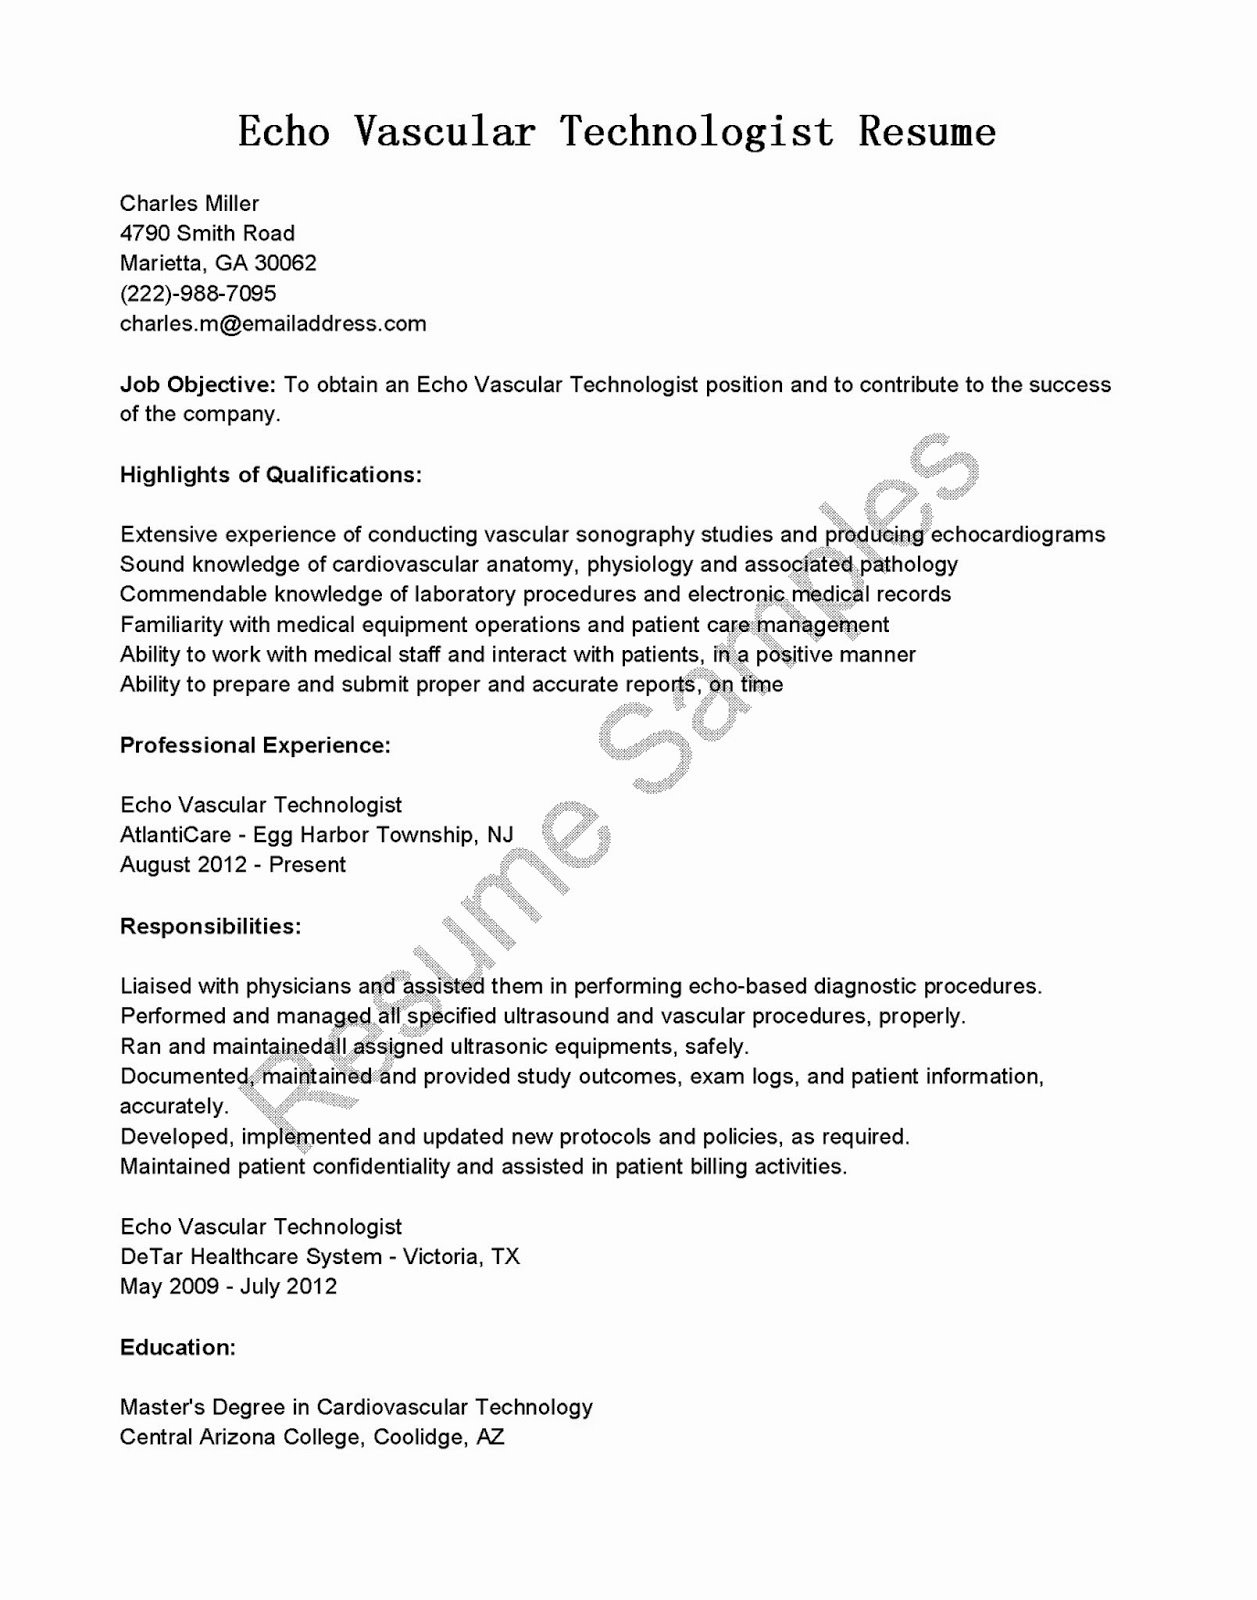 Texas Tech Letter Of Recommendation Inspirational Resume Samples Echo Vascular Technologist Resume Sample